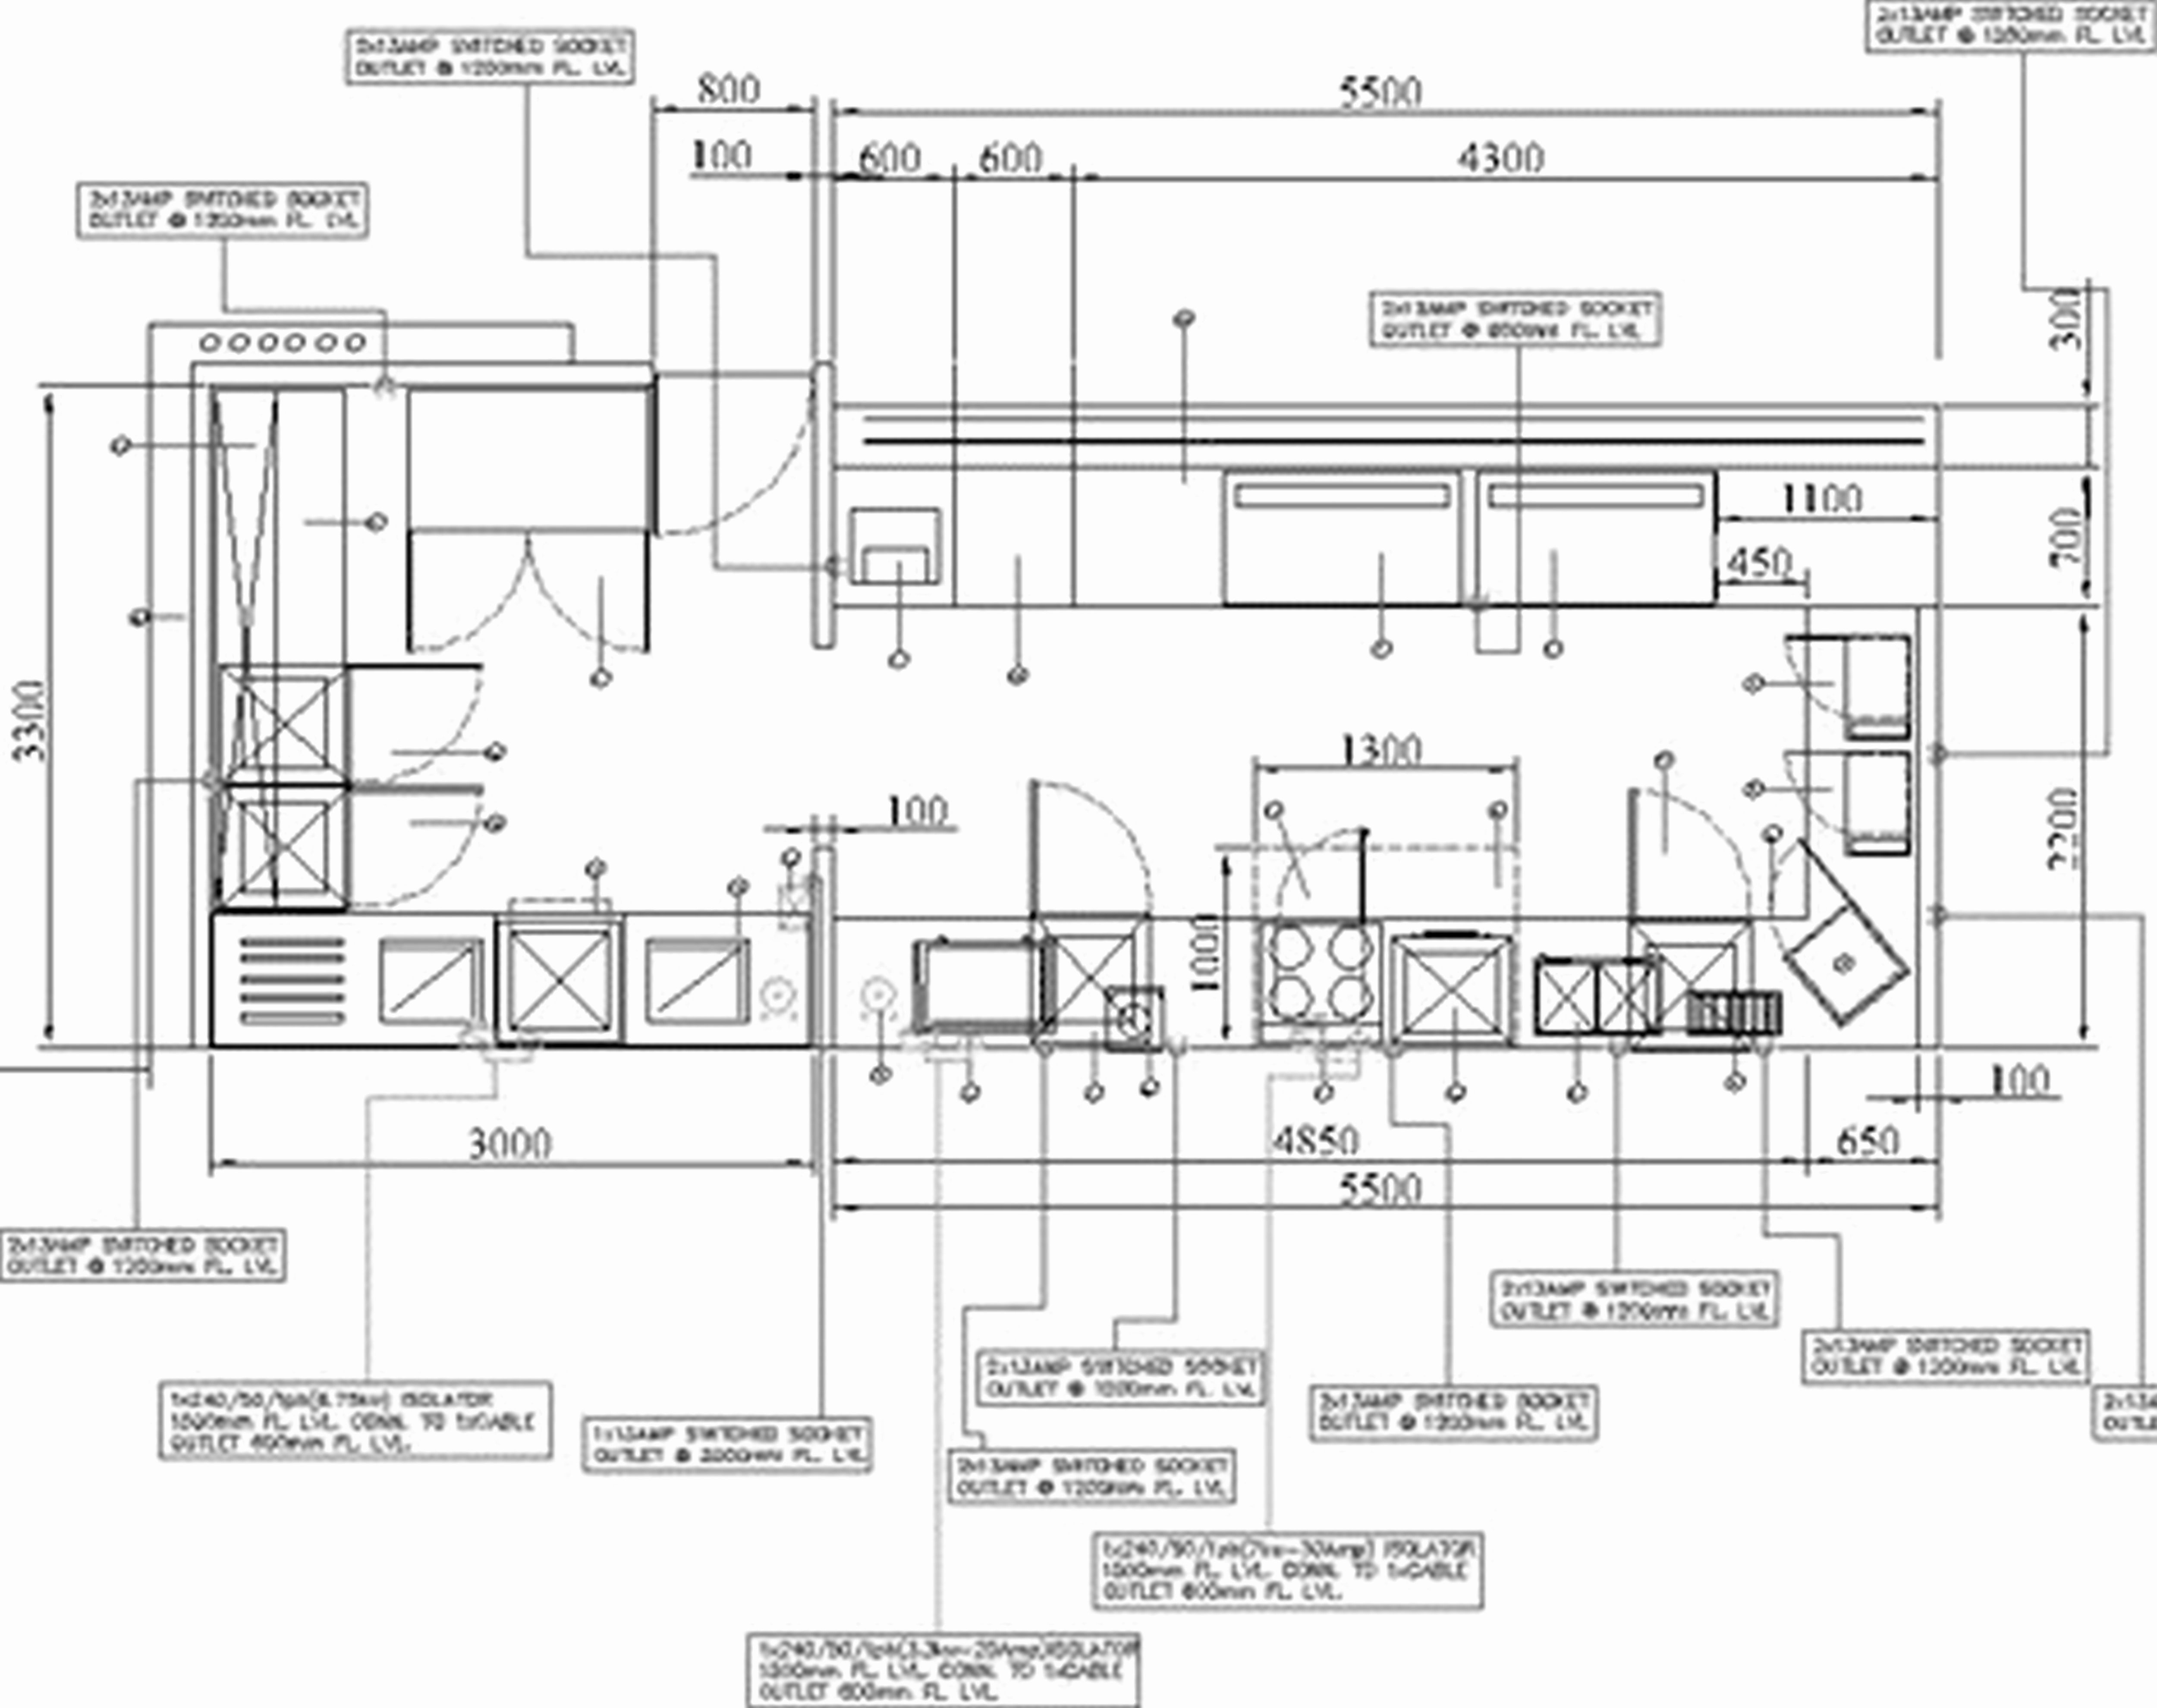 Restaurant Floor Plans With Dimensions Kitchen Commercial Kitchen Design Layouts Modern Flo Commercial Kitchen Design Restaurant Floor Plan Restaurant Layout